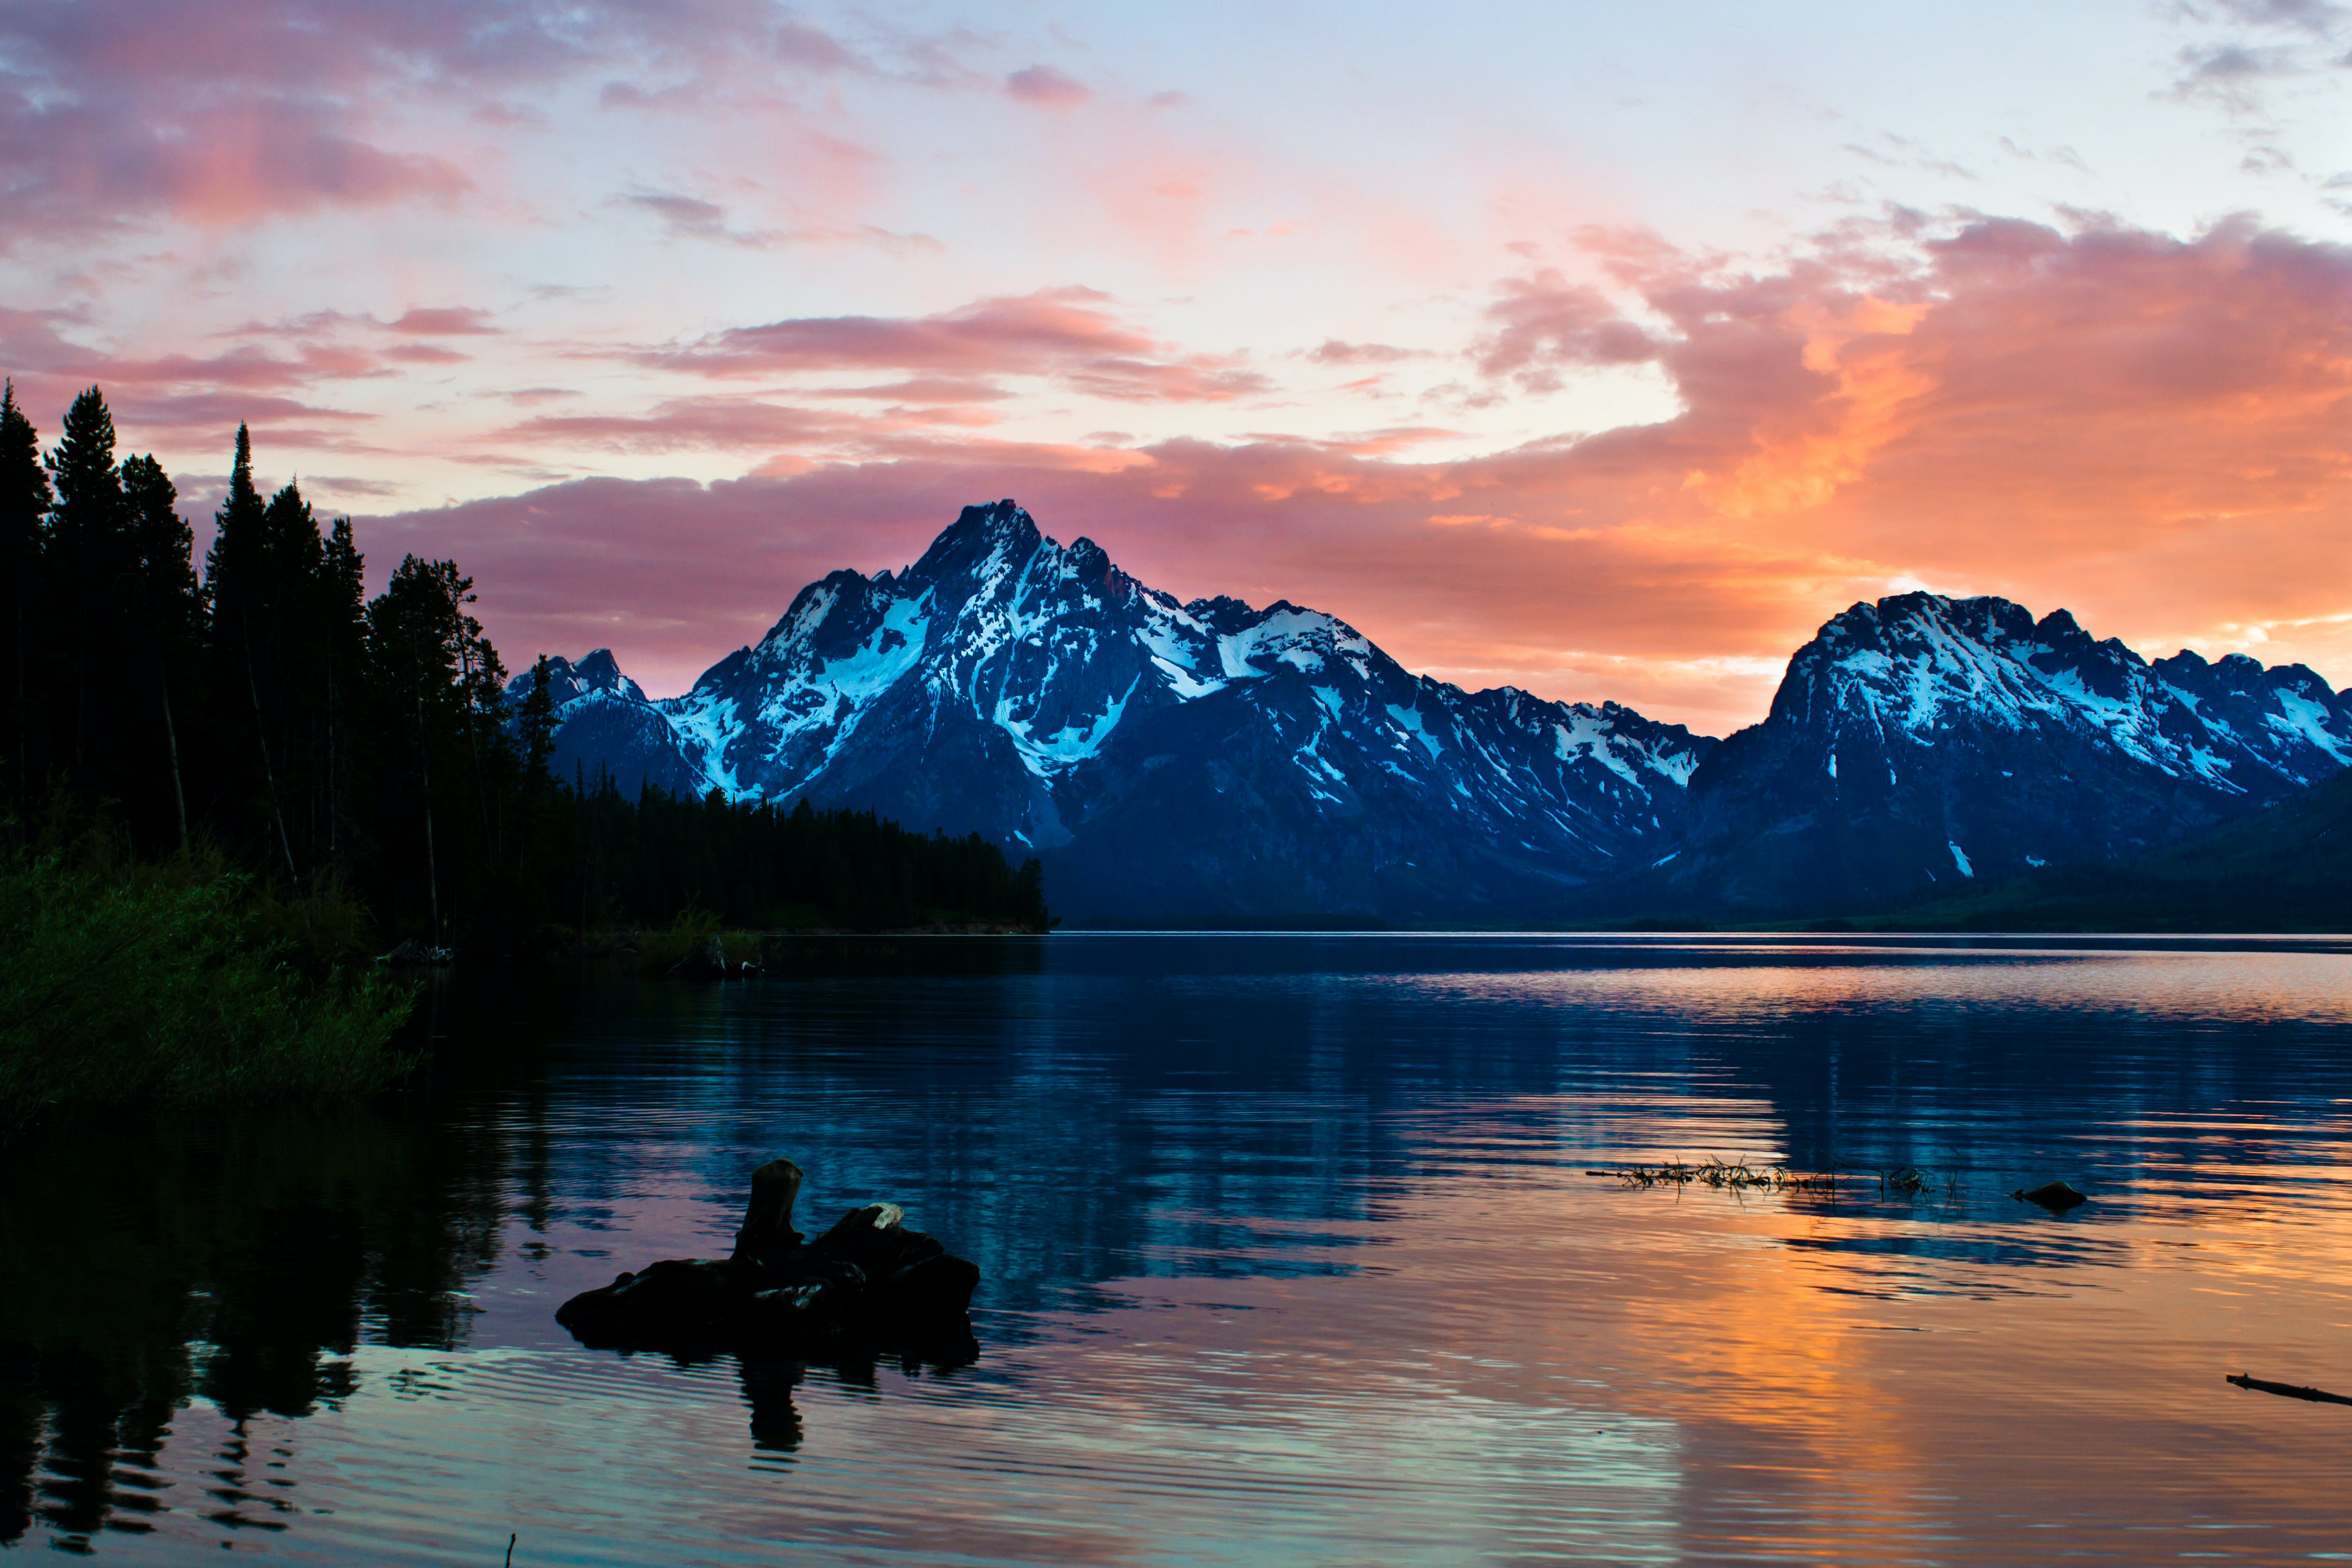 Photography of Mountains During Dusk